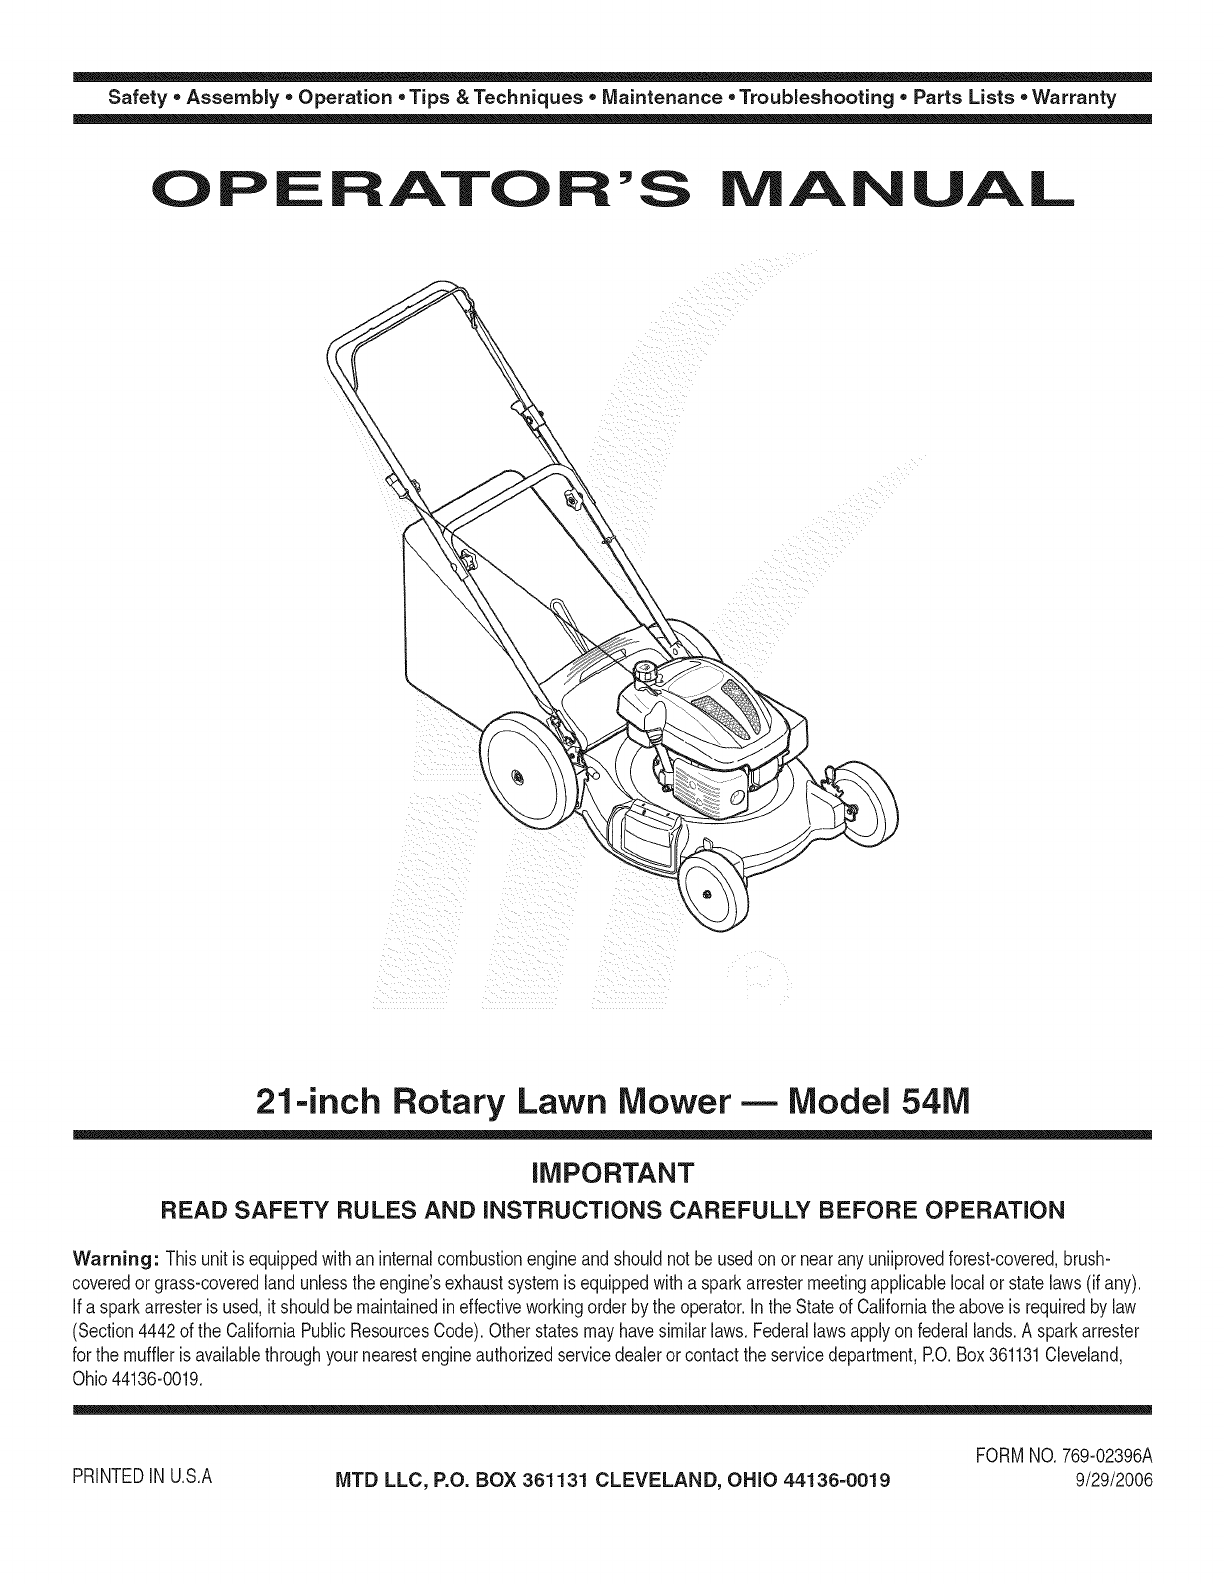 Mtd 11a 54mb055 User Manual Lawn Mower Manuals And Guides 1107424l Parts Diagram On List For Safety Assembly Operation Tips Techniques Maintenance Troubleshooting Lists Warranty Of Aoal 21inch Rotary